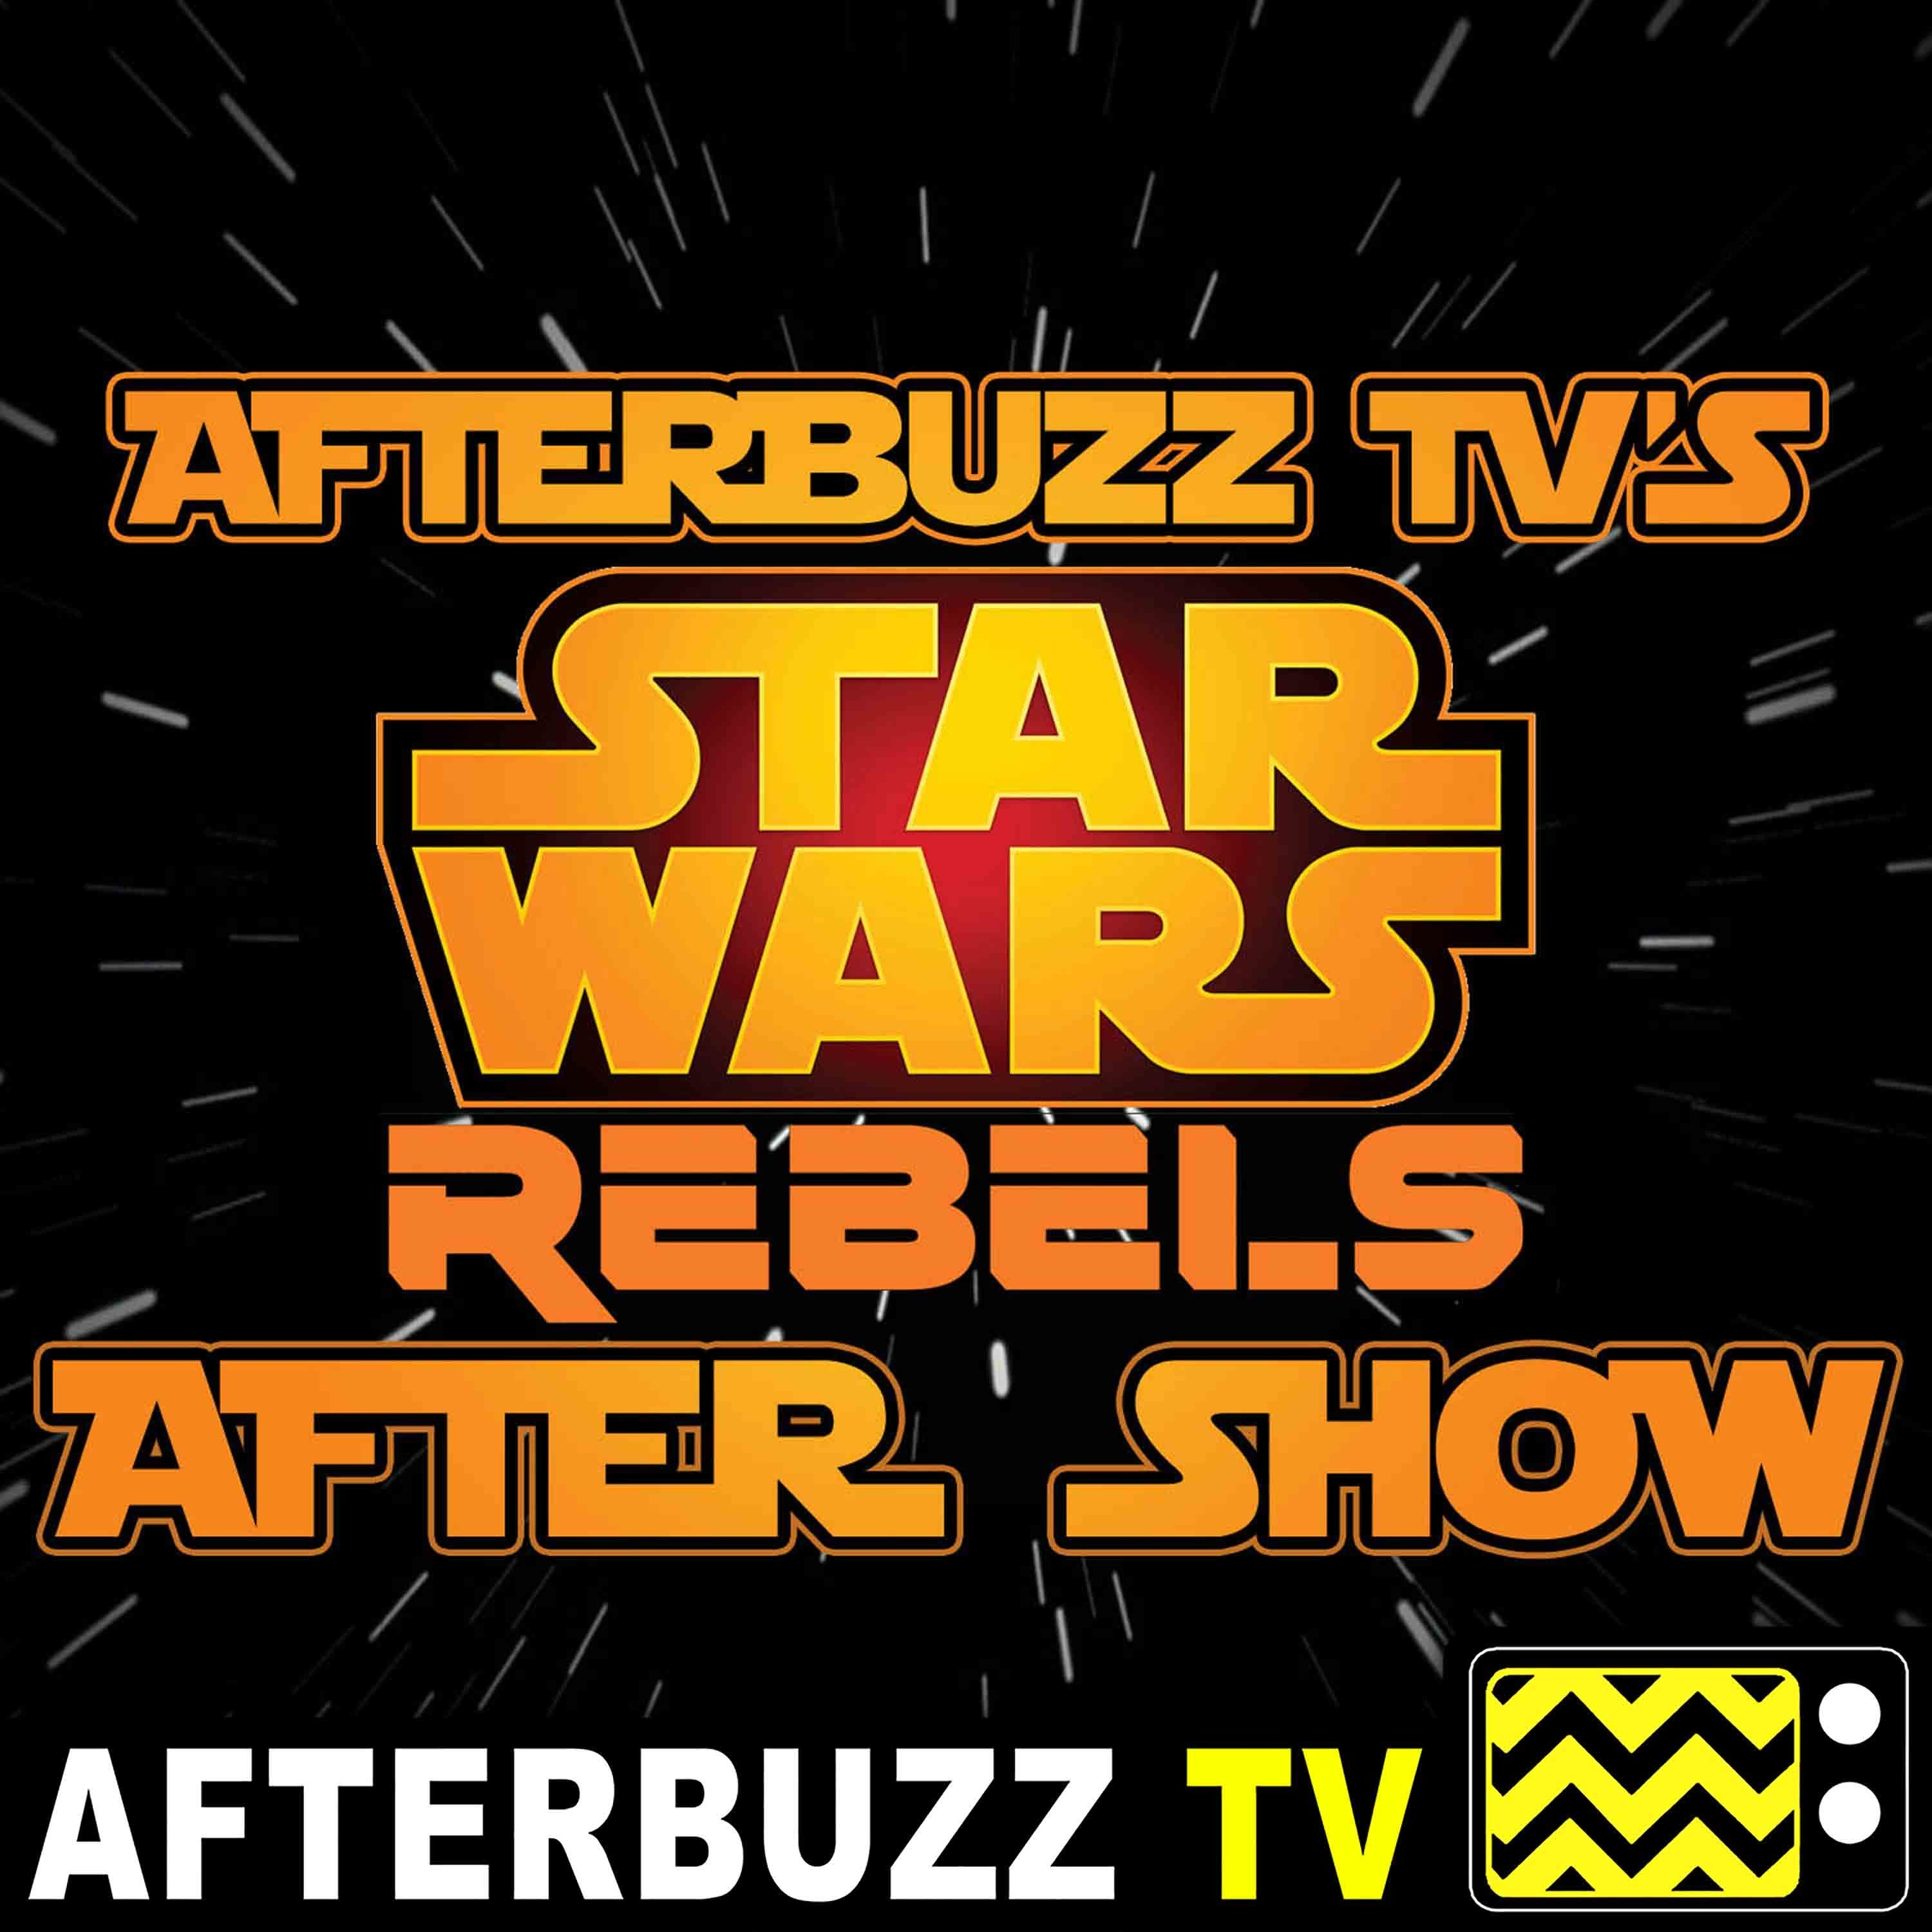 Star Wars Rebels S:4 | Jedi Night; Dume E:10 & E:11 | AfterBuzz TV AfterShow